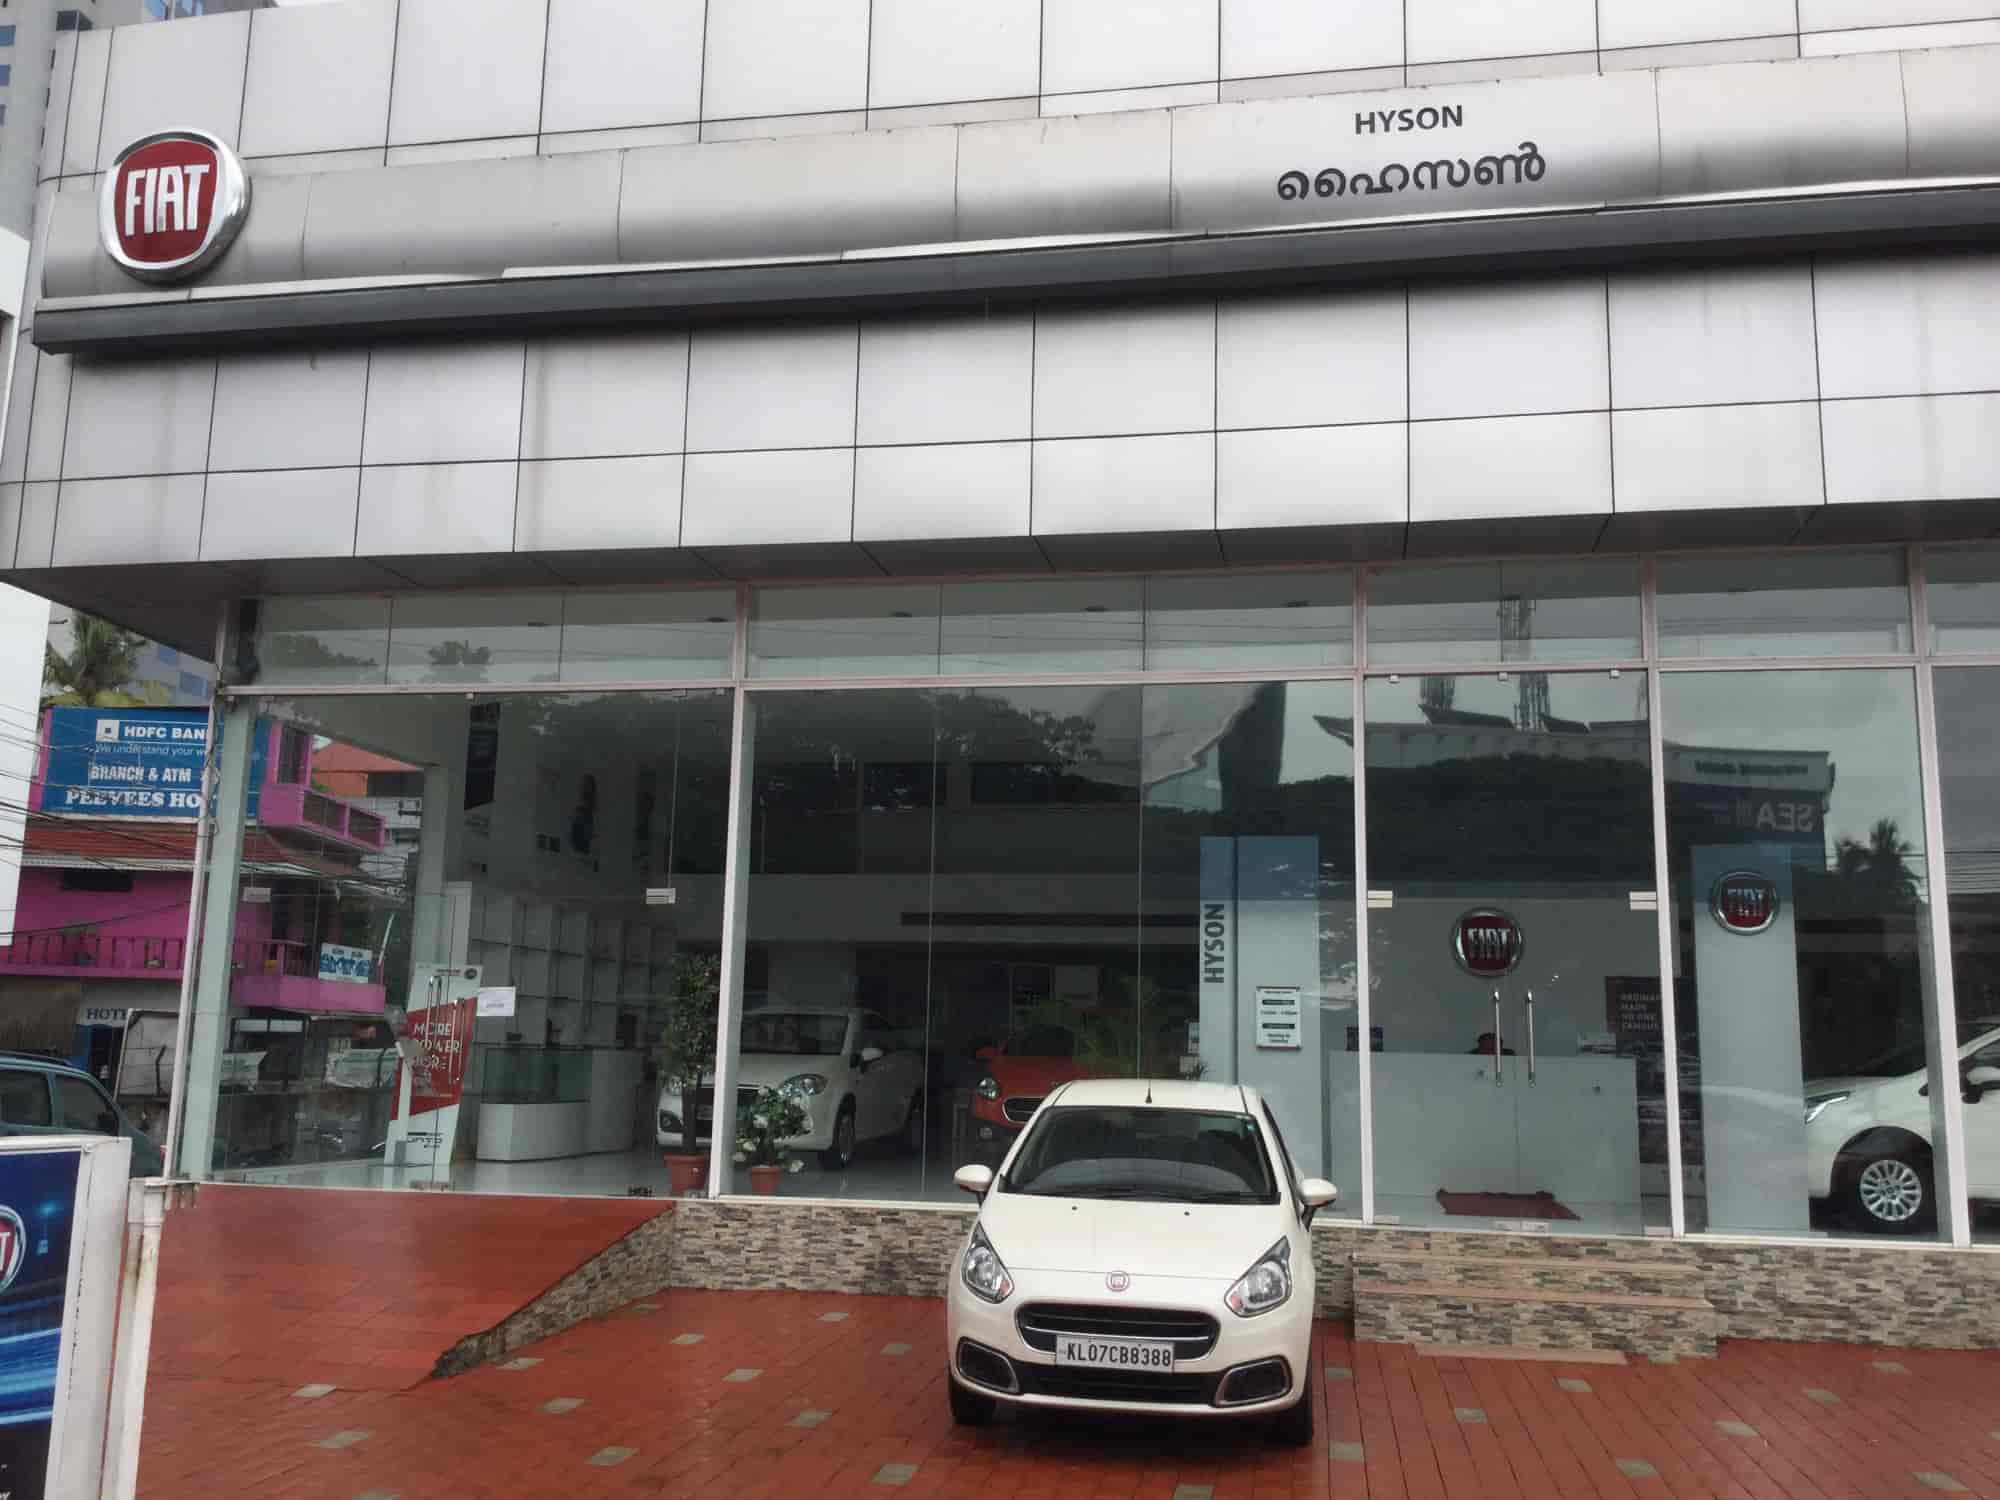 india compass news jeepcompass launch automobiles begins companies business exporting limited jeep to australia ians fiat made japan in zee